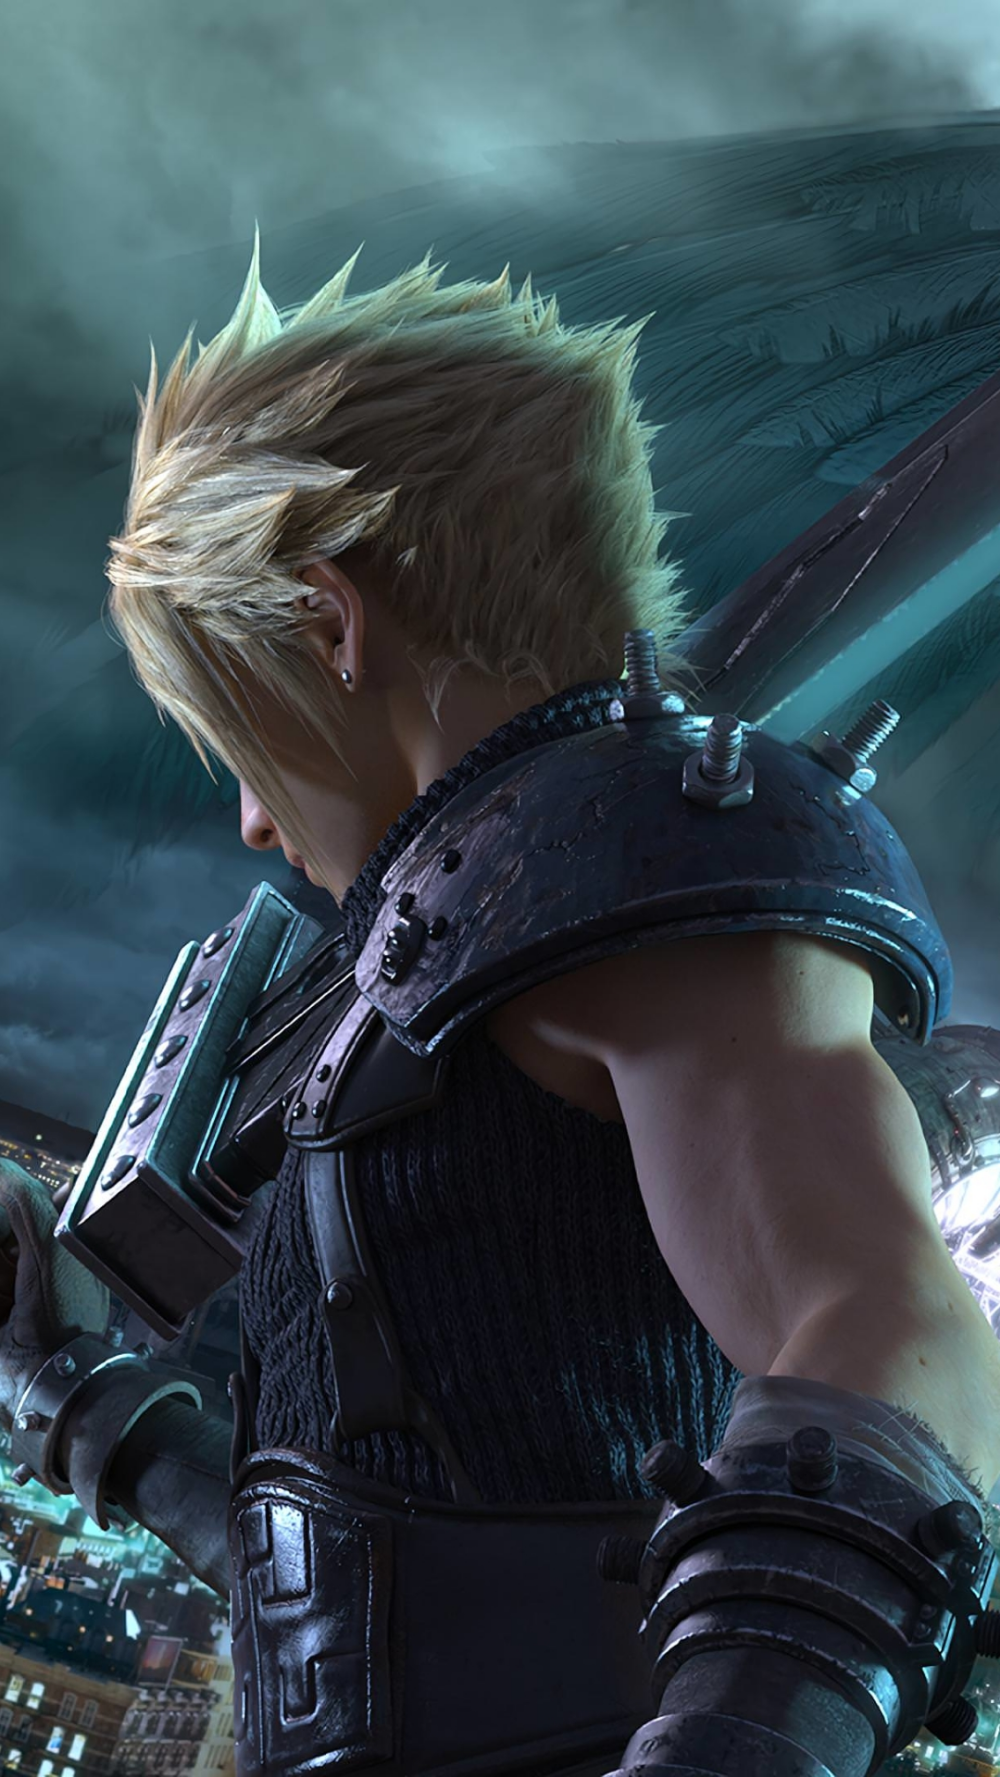 Final Fantasy Vii Remake Wallpapers Wallpaper Cave 4